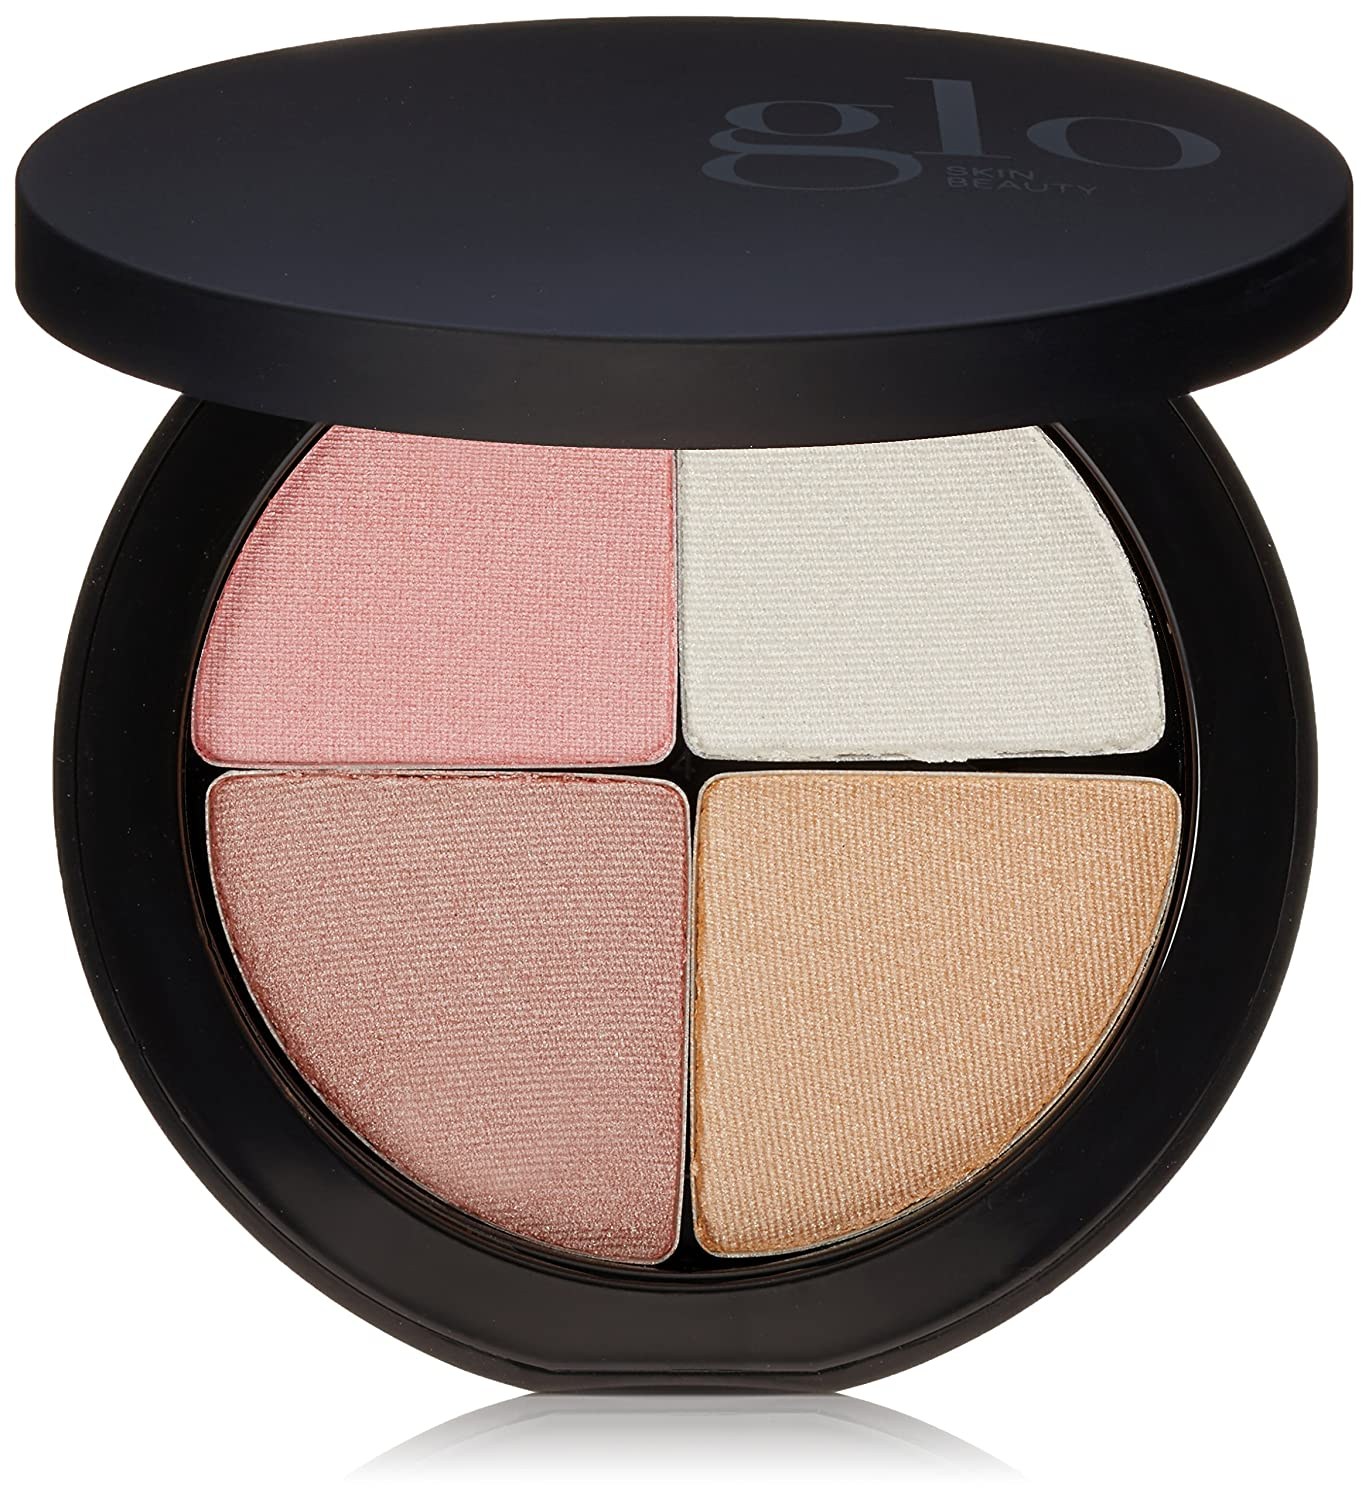 glo Skin Beauty Shimmer Brick Face Highlighter Mineral Makeup Palette, 4 Colors, 2 Shades, Cruelty Free, Luster, 0.3 Oz Glo Minerals GLO1151